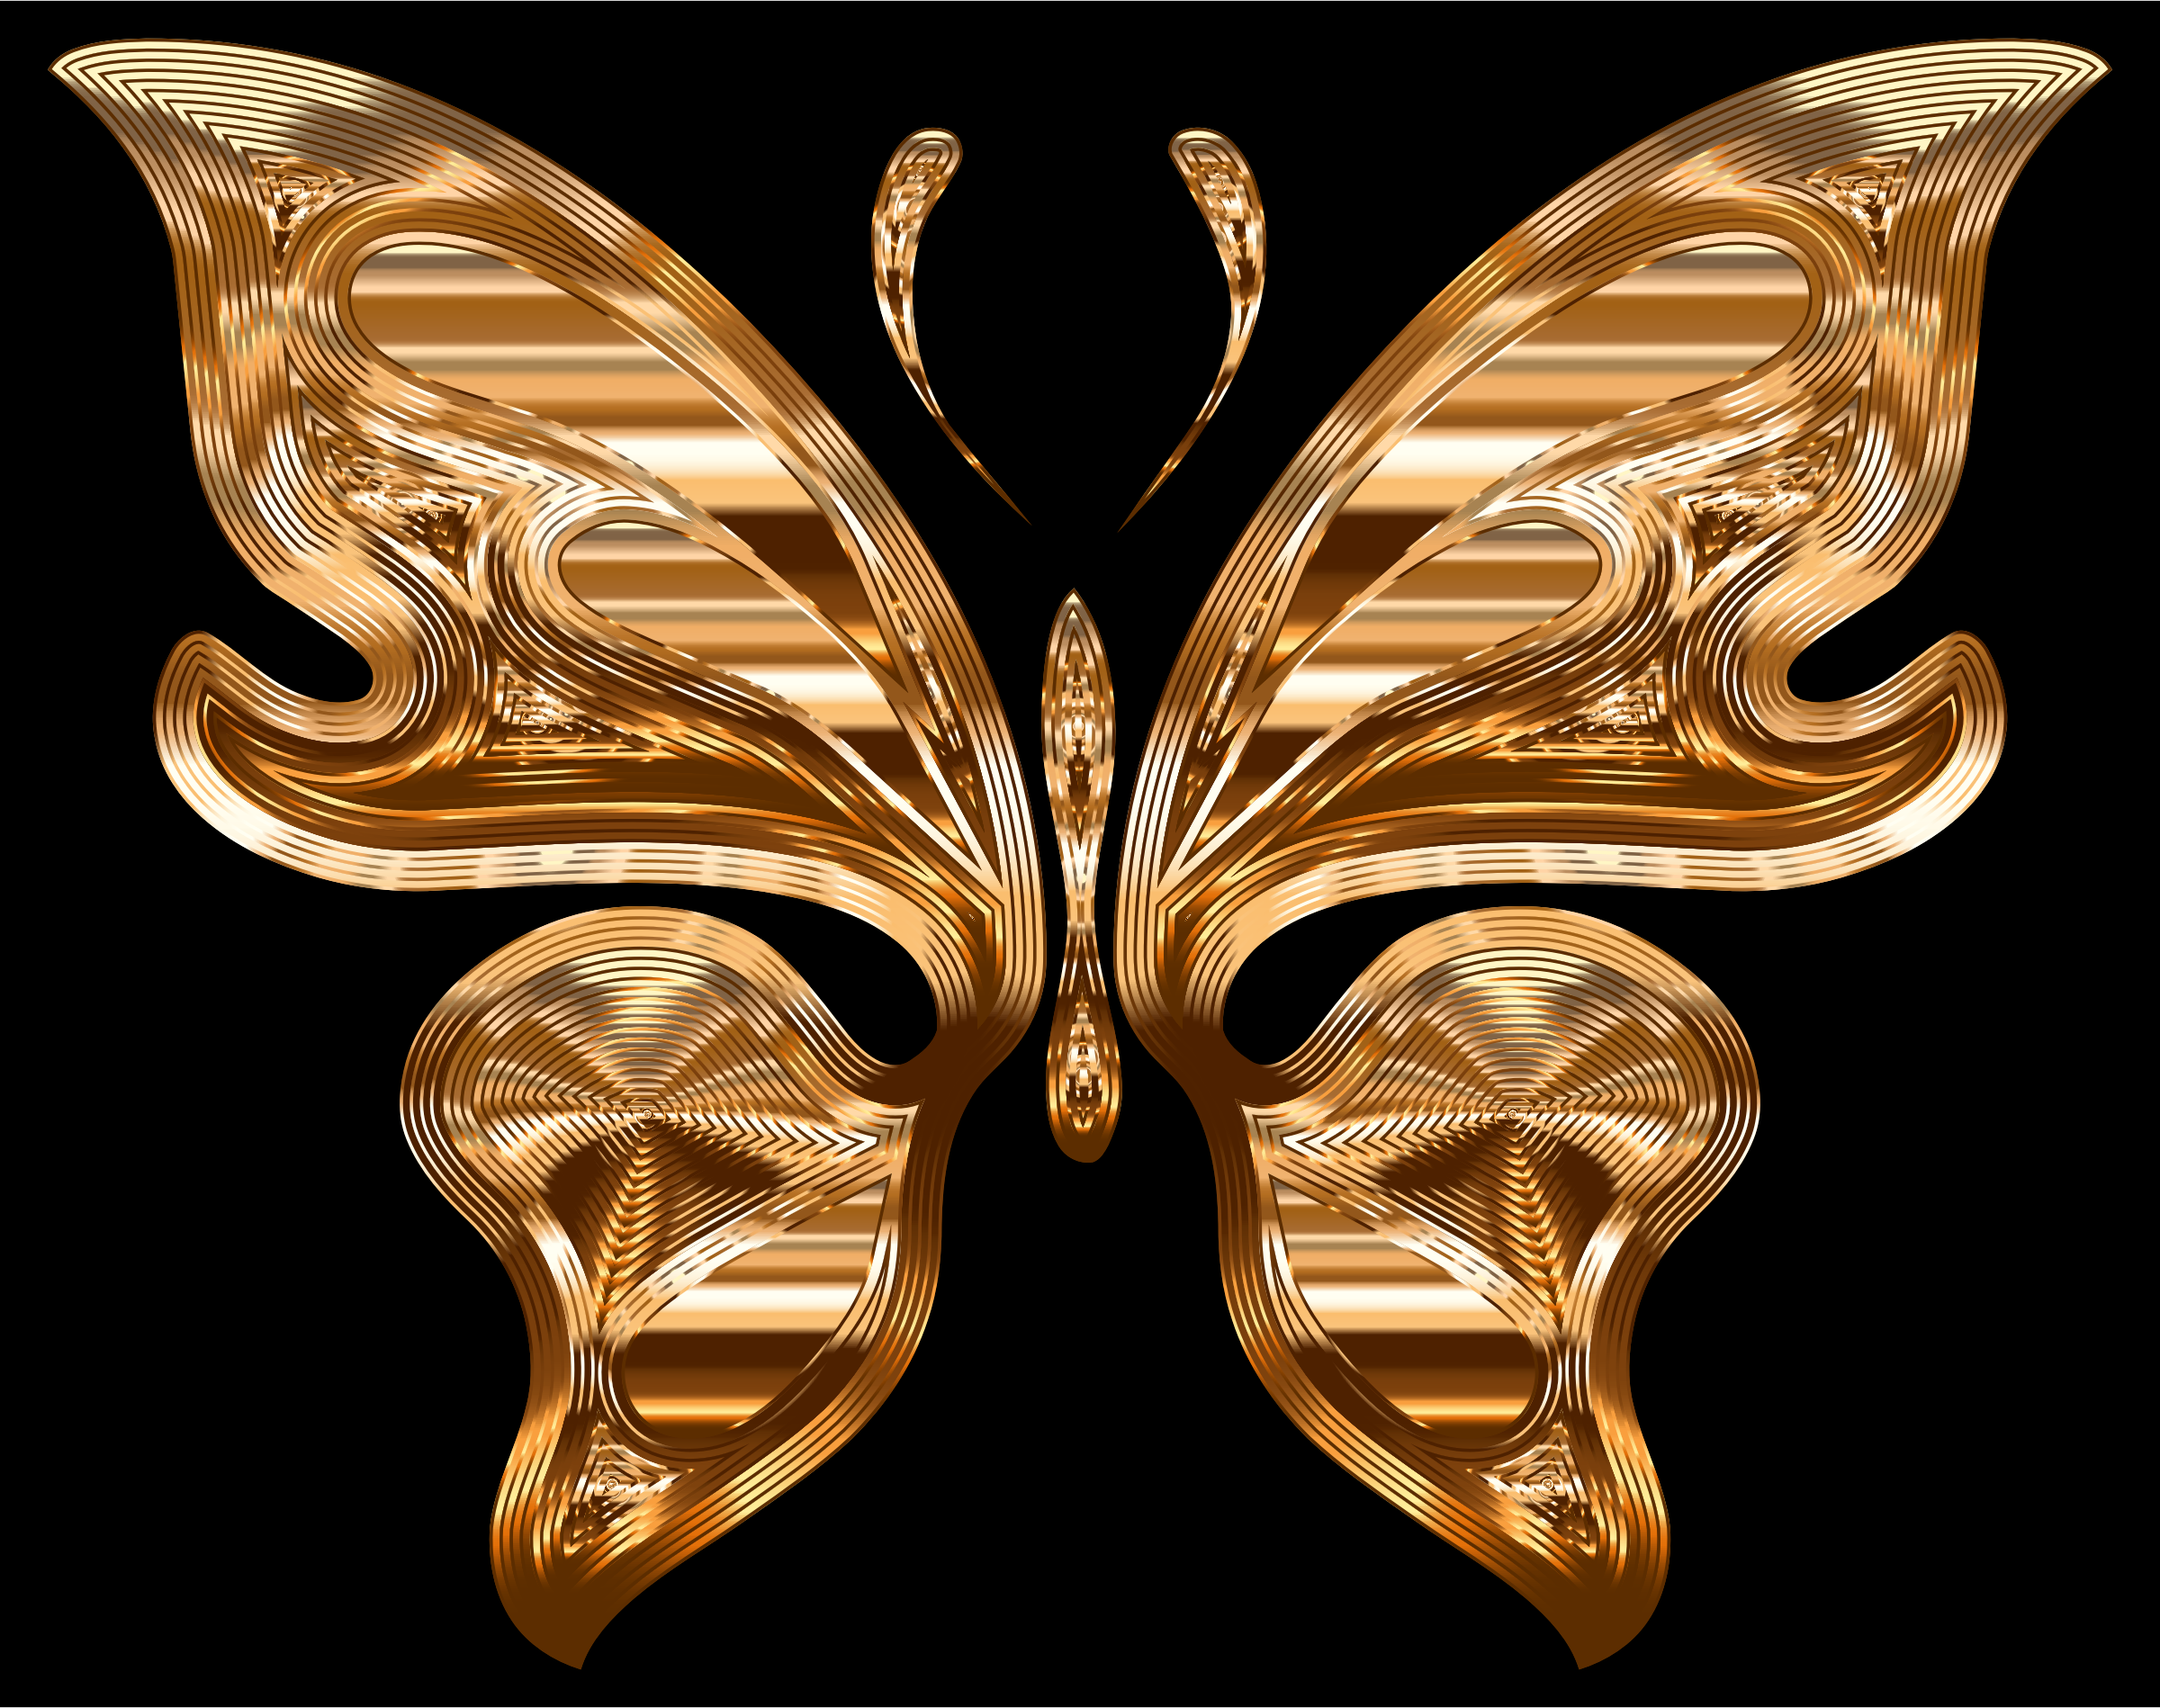 Prismatic Butterfly 10 Variation 3 by GDJ